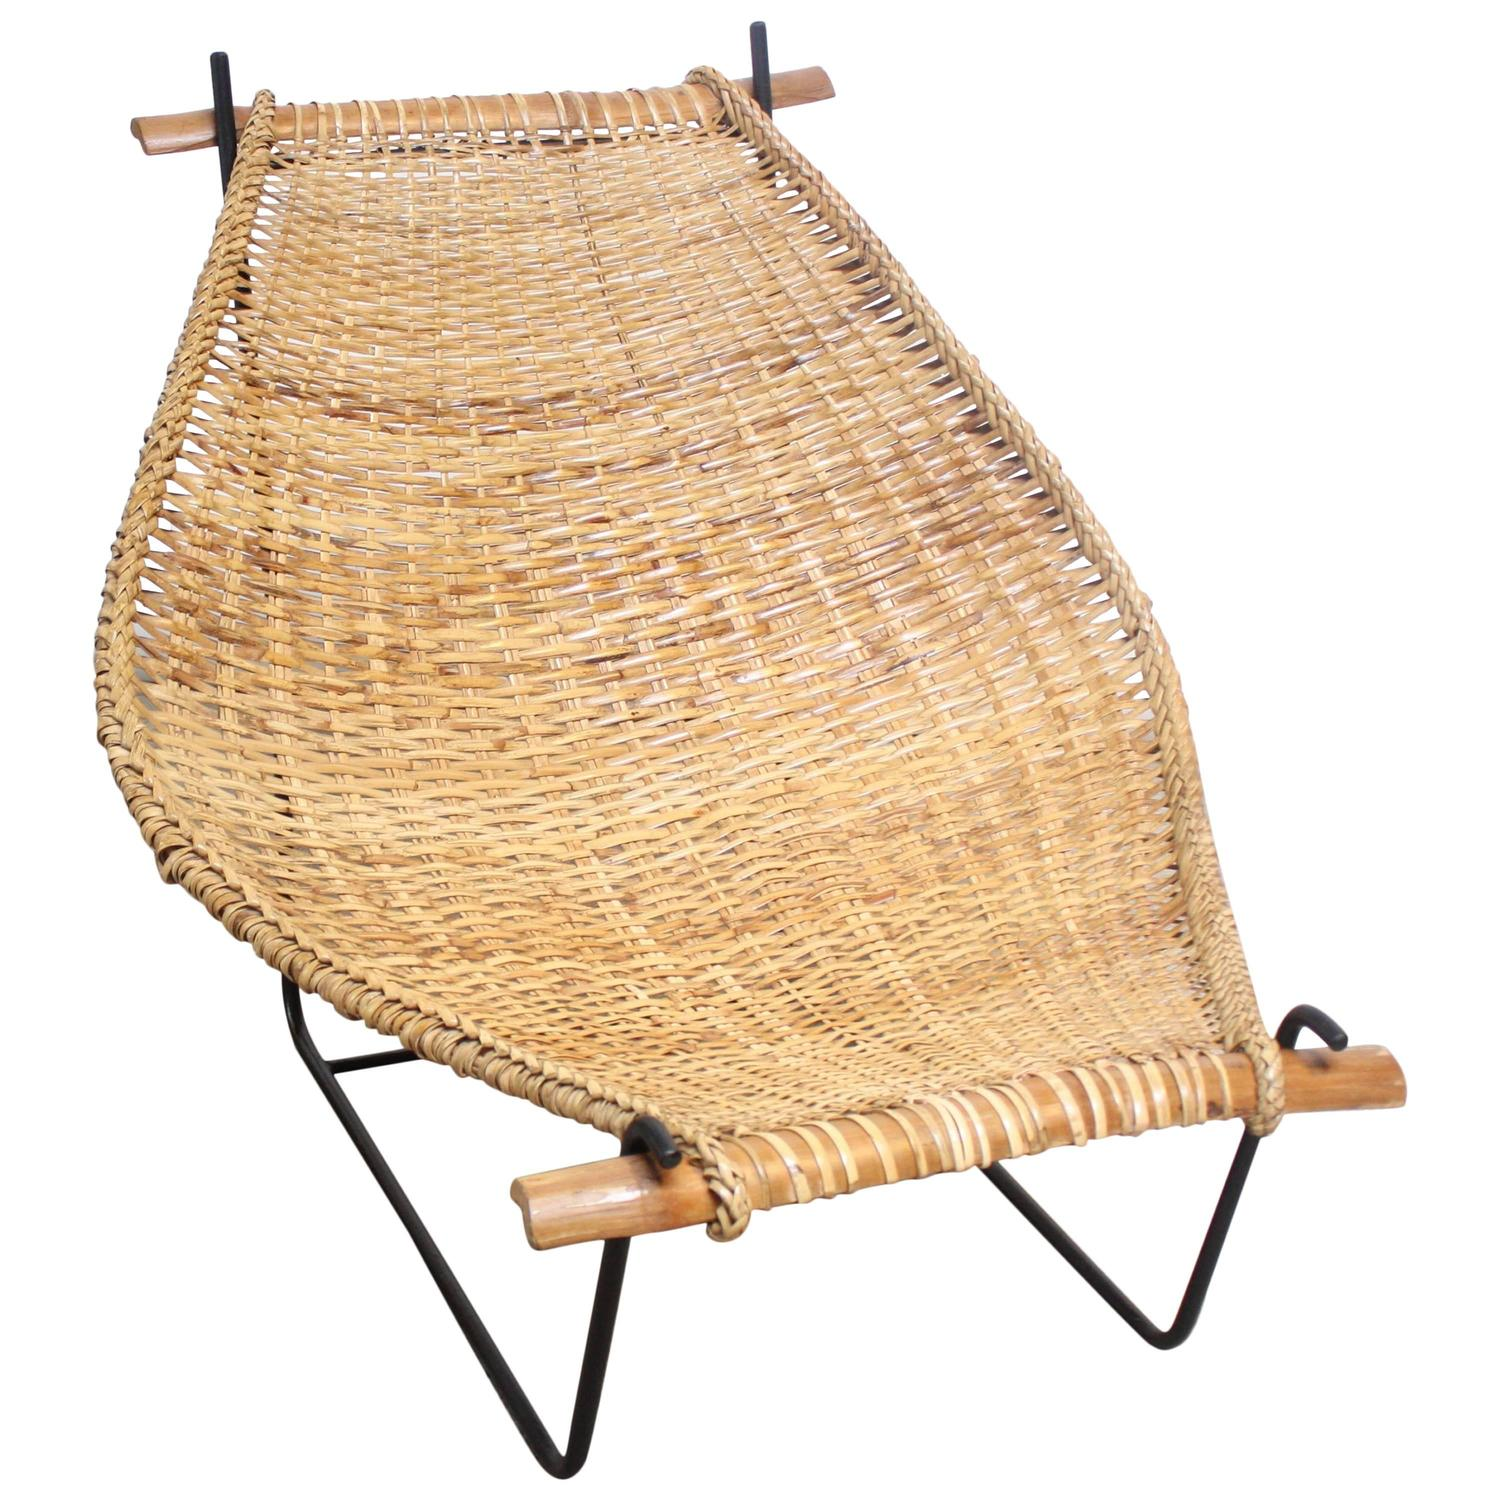 Rattan and Iron Sling Chair by Danny Ho Fong for Tropi-cal For ...